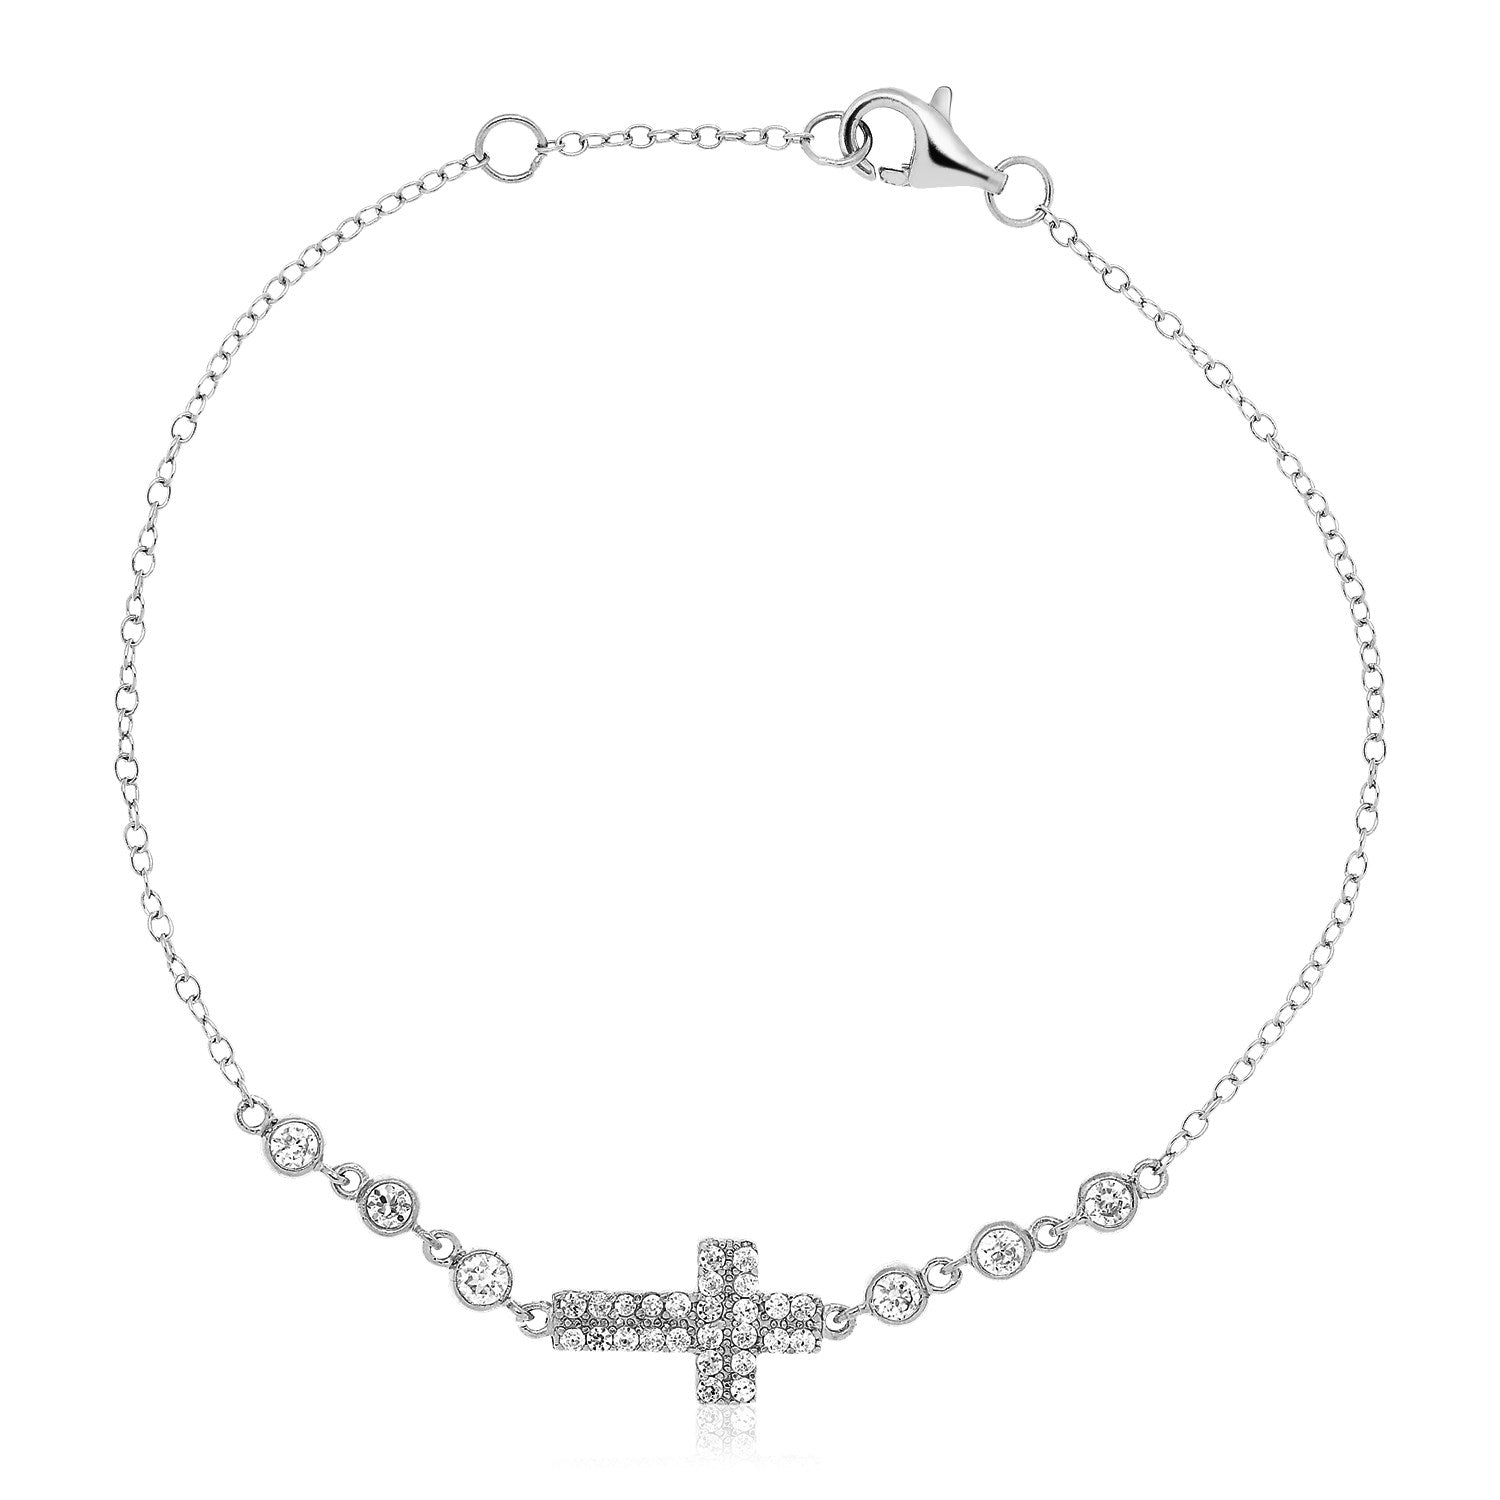 Sterling Silver Cross Bracelet with Cubic Zirconias